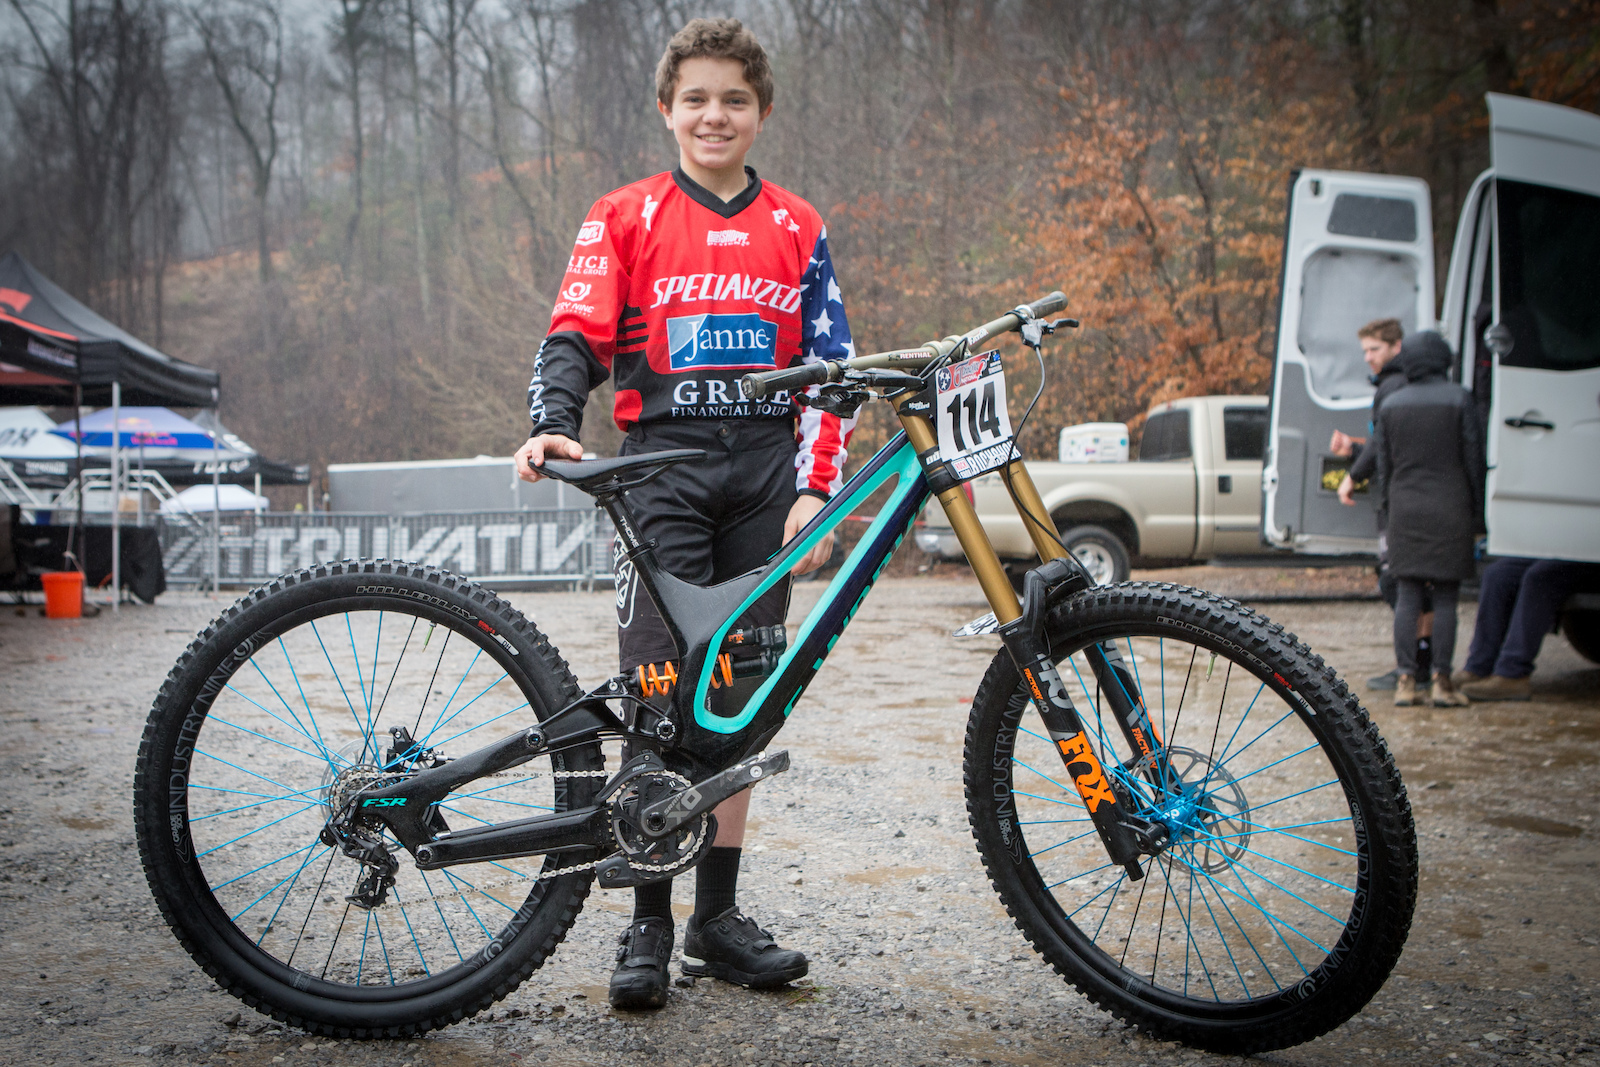 2f821f31b99 Bike Check: Christopher Grice's Specialized Demo - 2019 Windrock Pro GRT